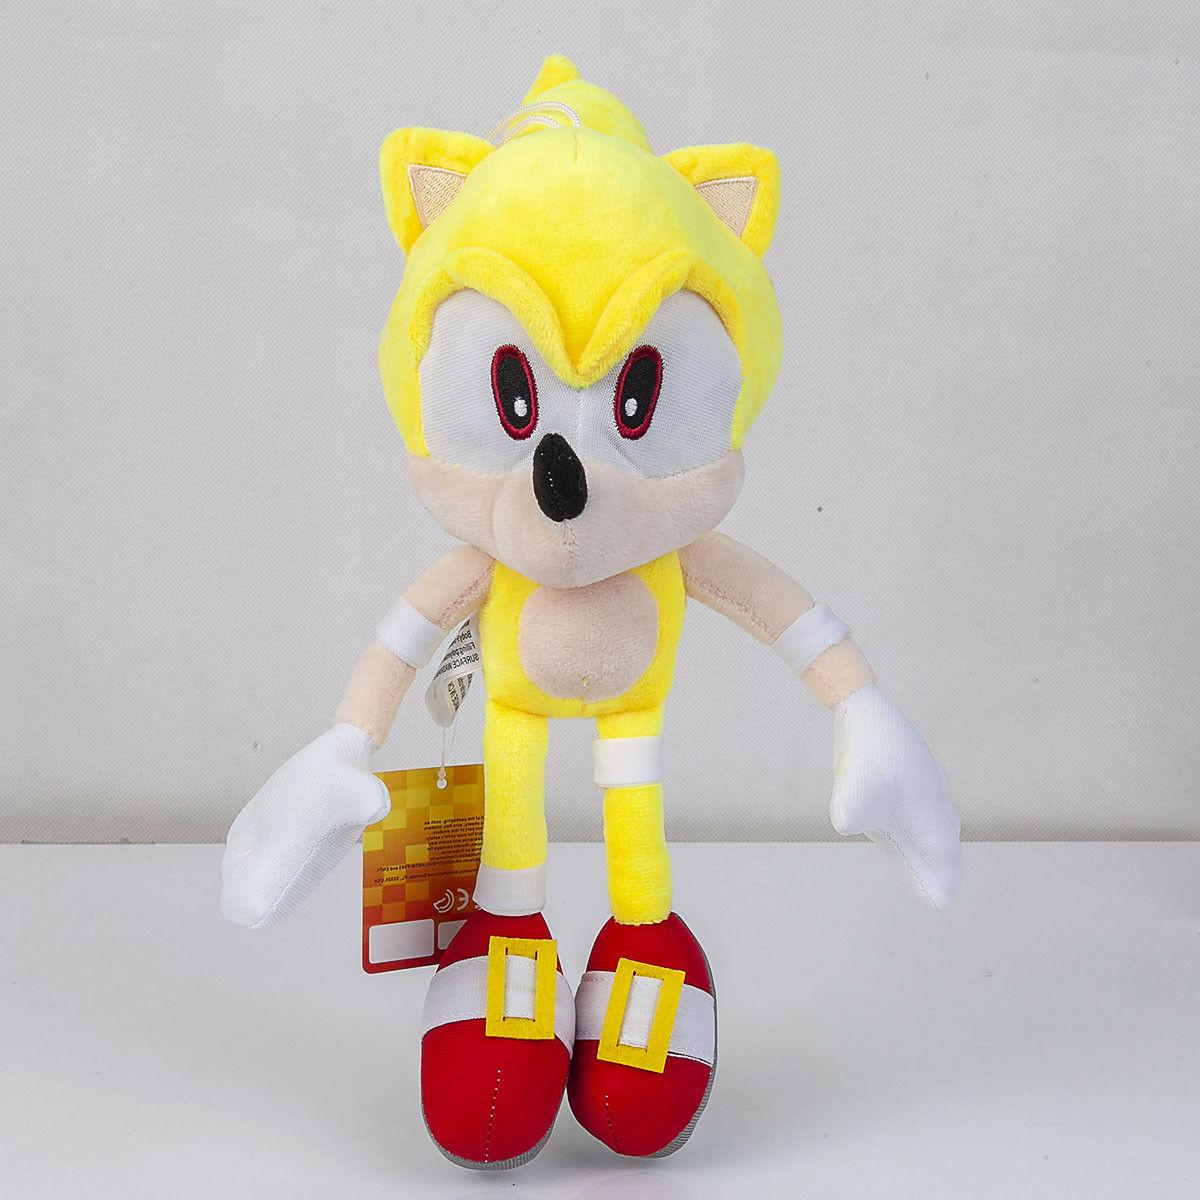 Super The Hedgehog Tails Plush Animal Toy 13 inch Gift